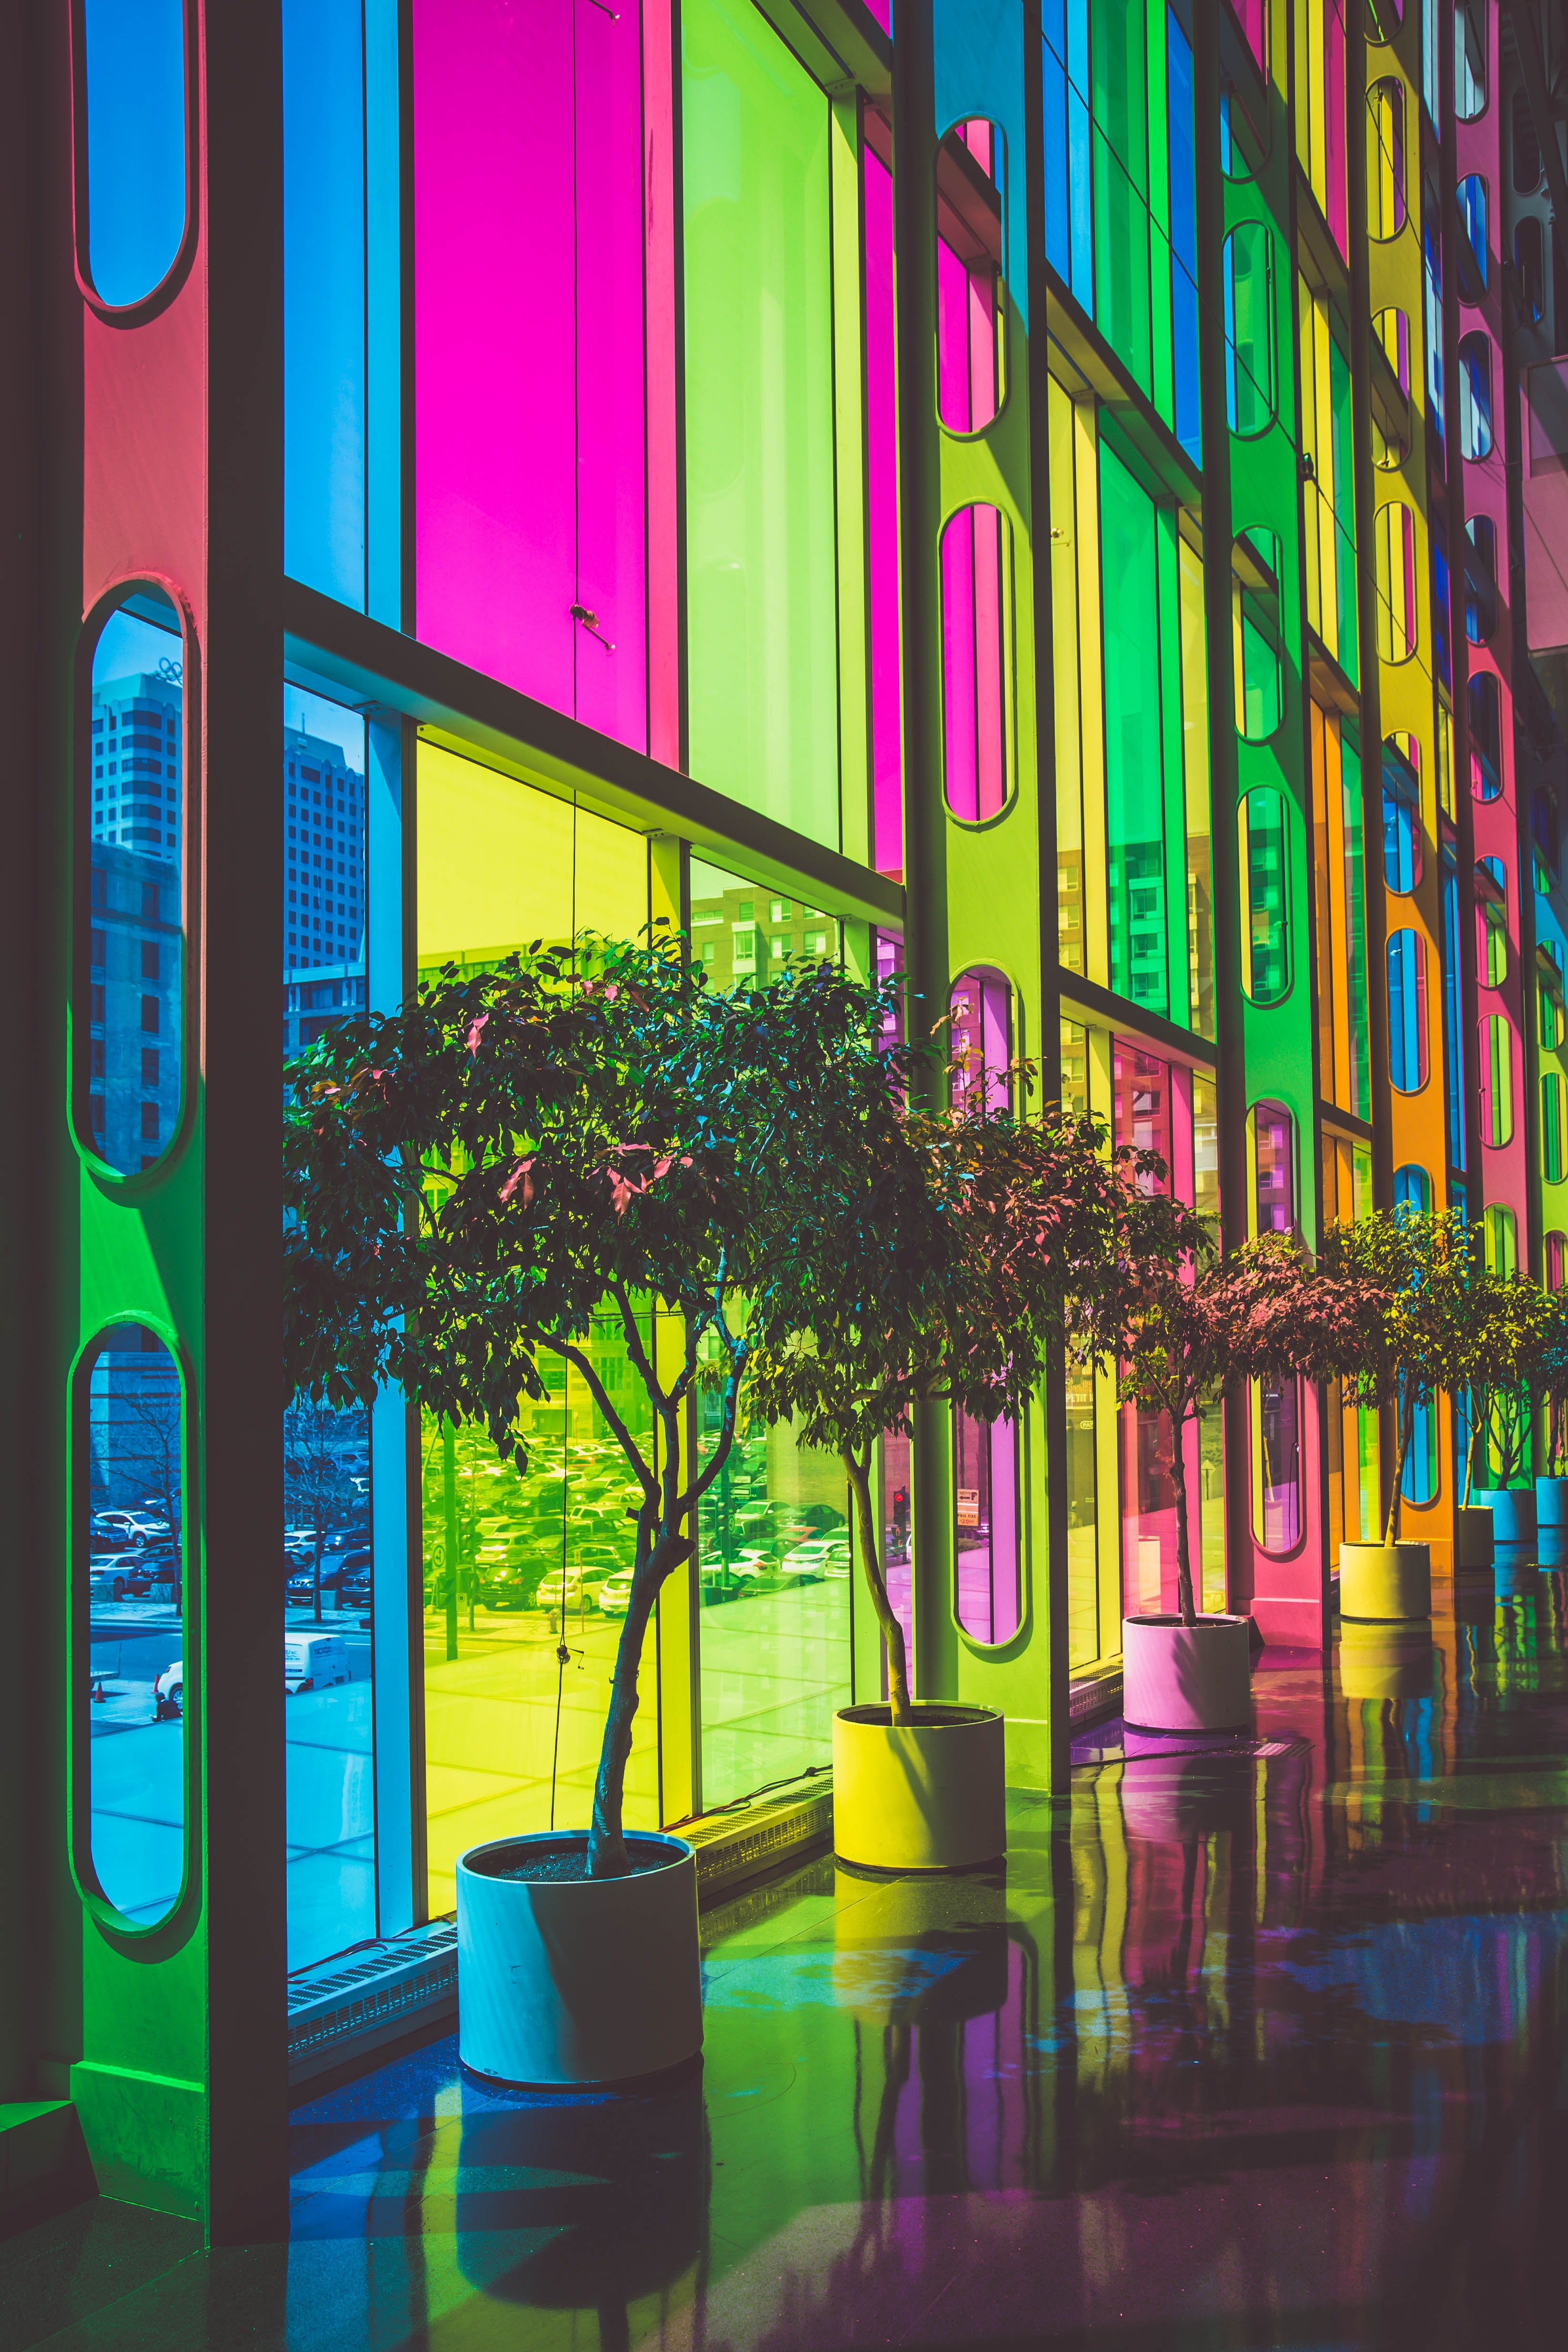 Multicolored rainbow glass windows with potted trees in front in urban street